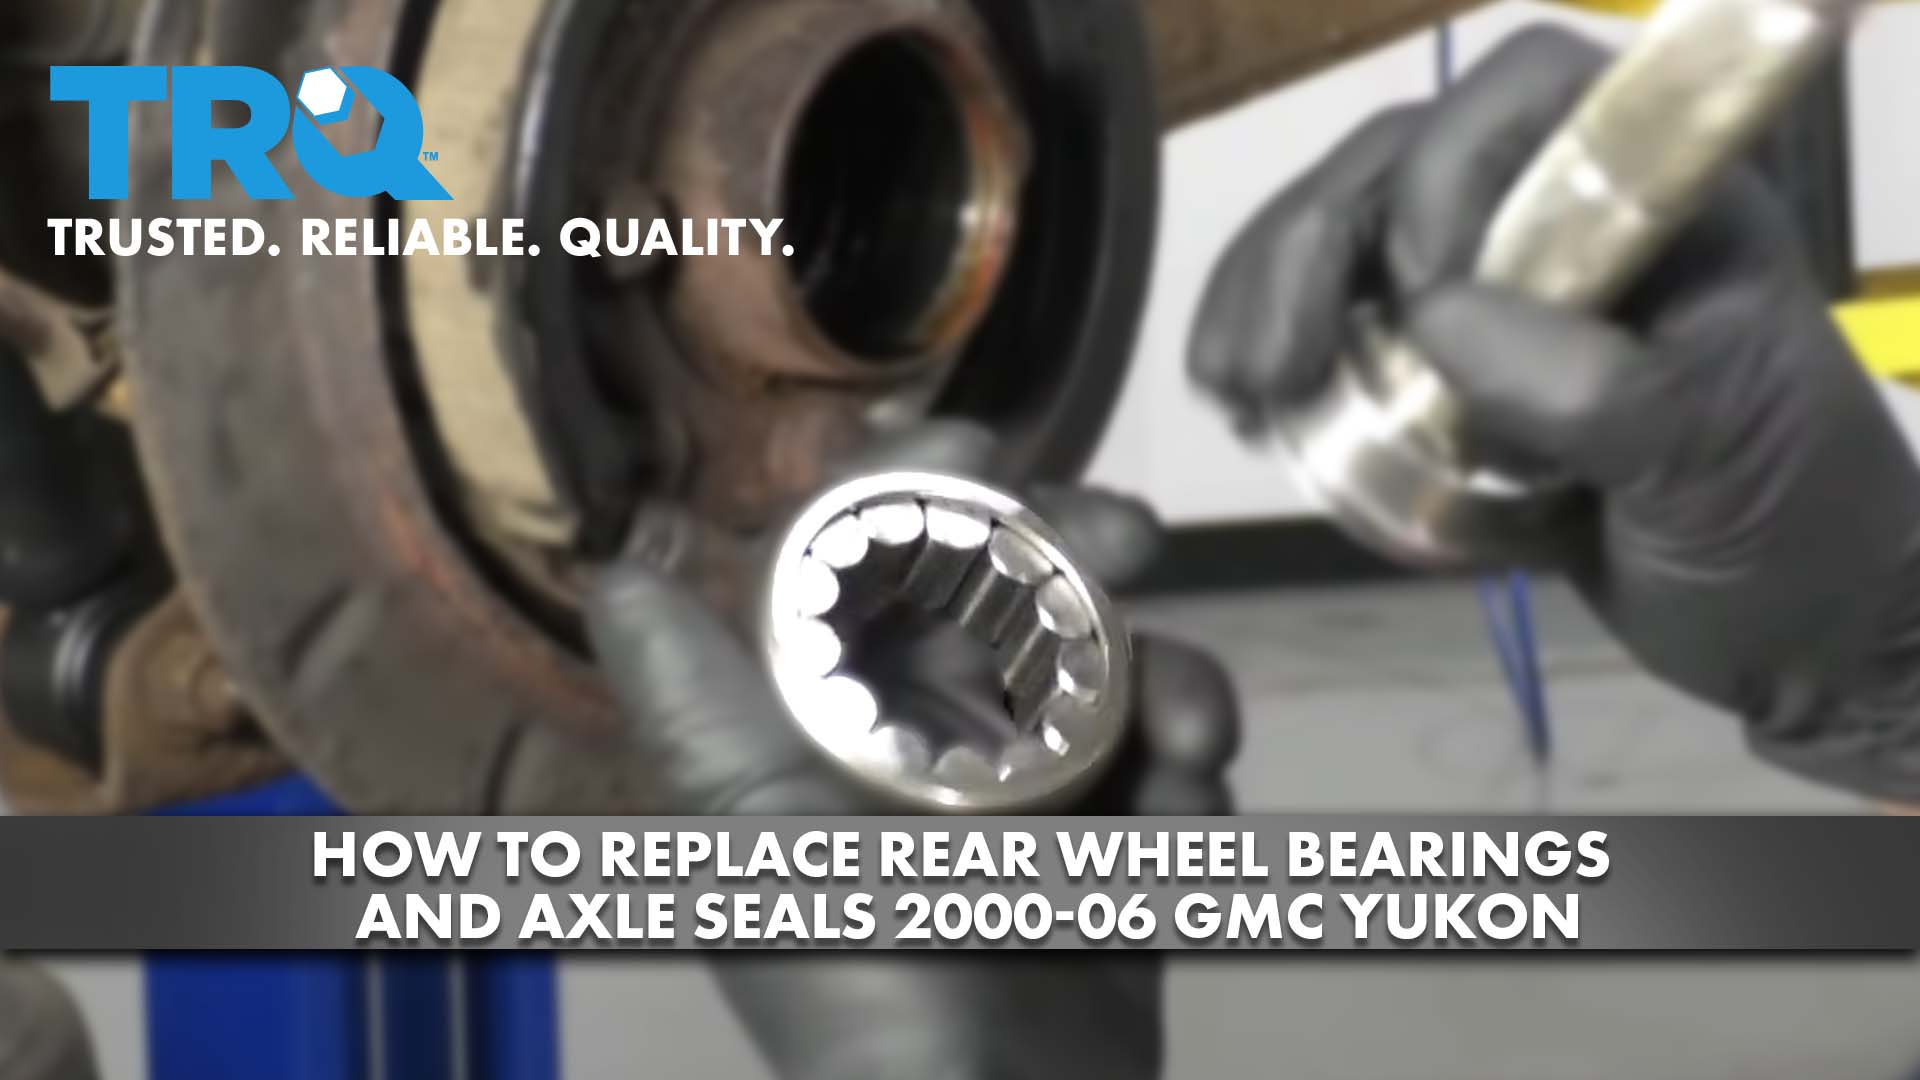 How to Replace Rear Wheel Bearings and Axle Seals 2000-06 GMC Yukon